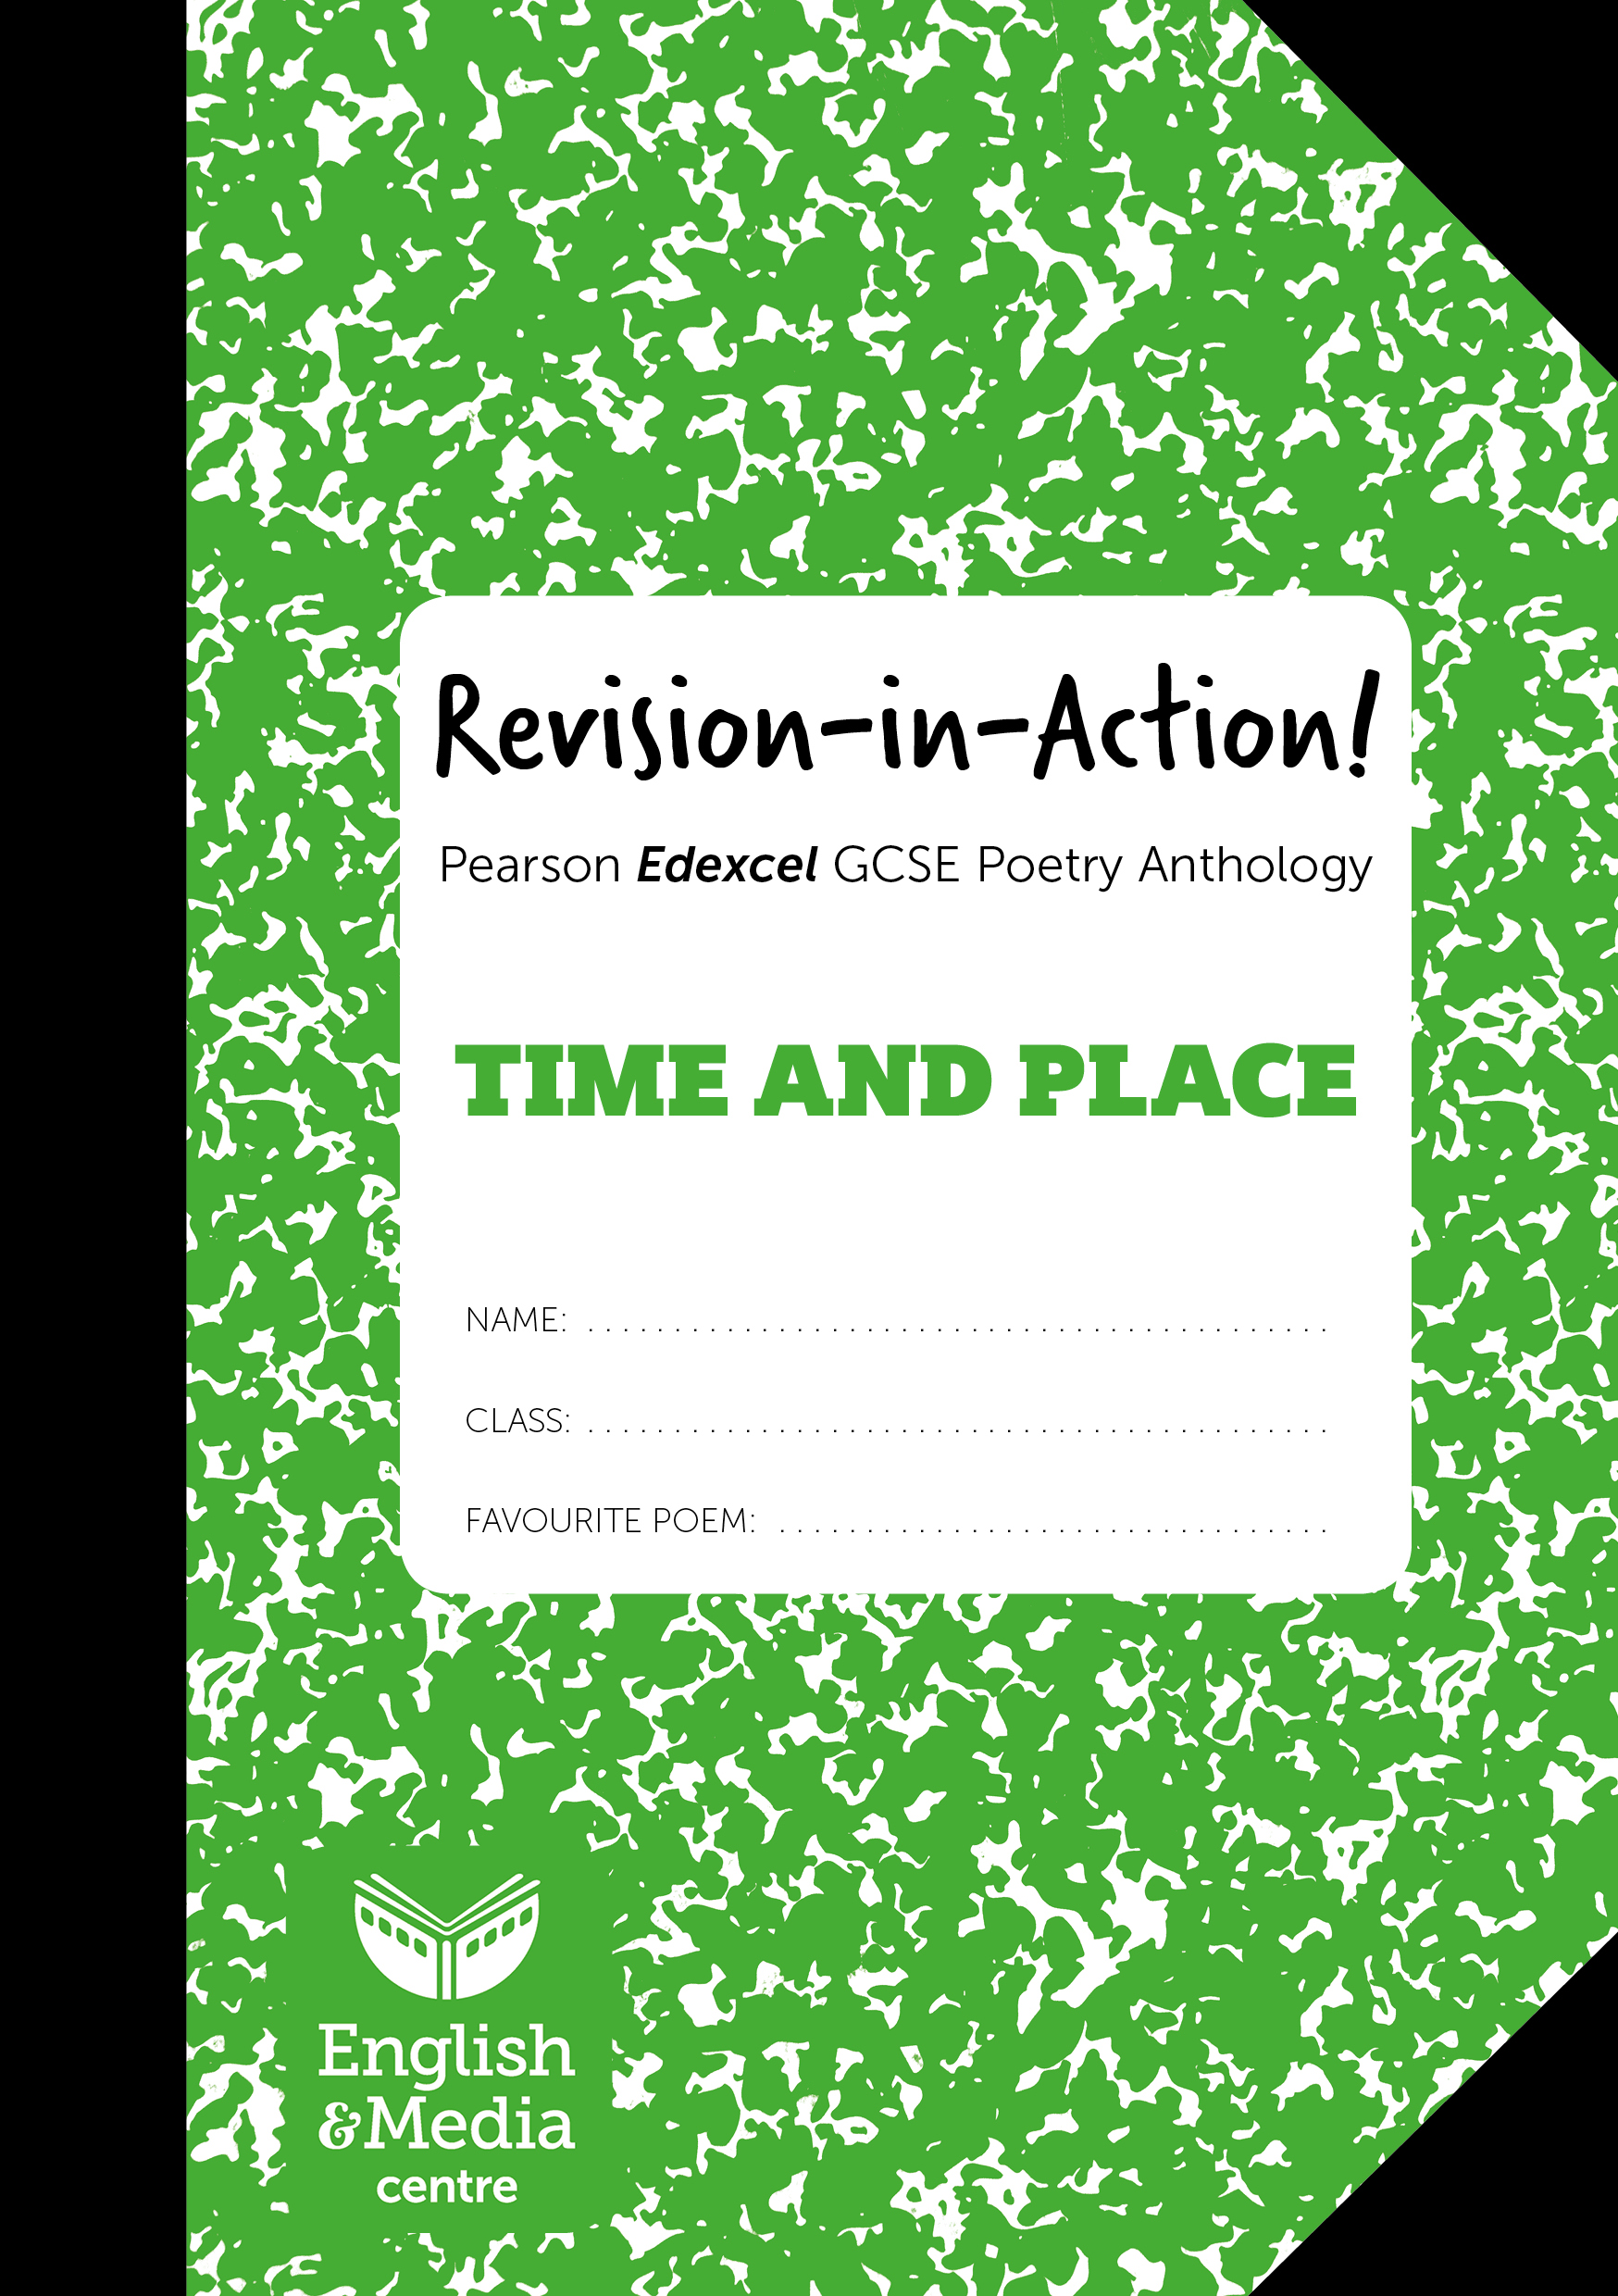 Cover image for Revision-in-Action – Edexcel Time & Place (6+ sets of 10 workbooks = £1 per copy)